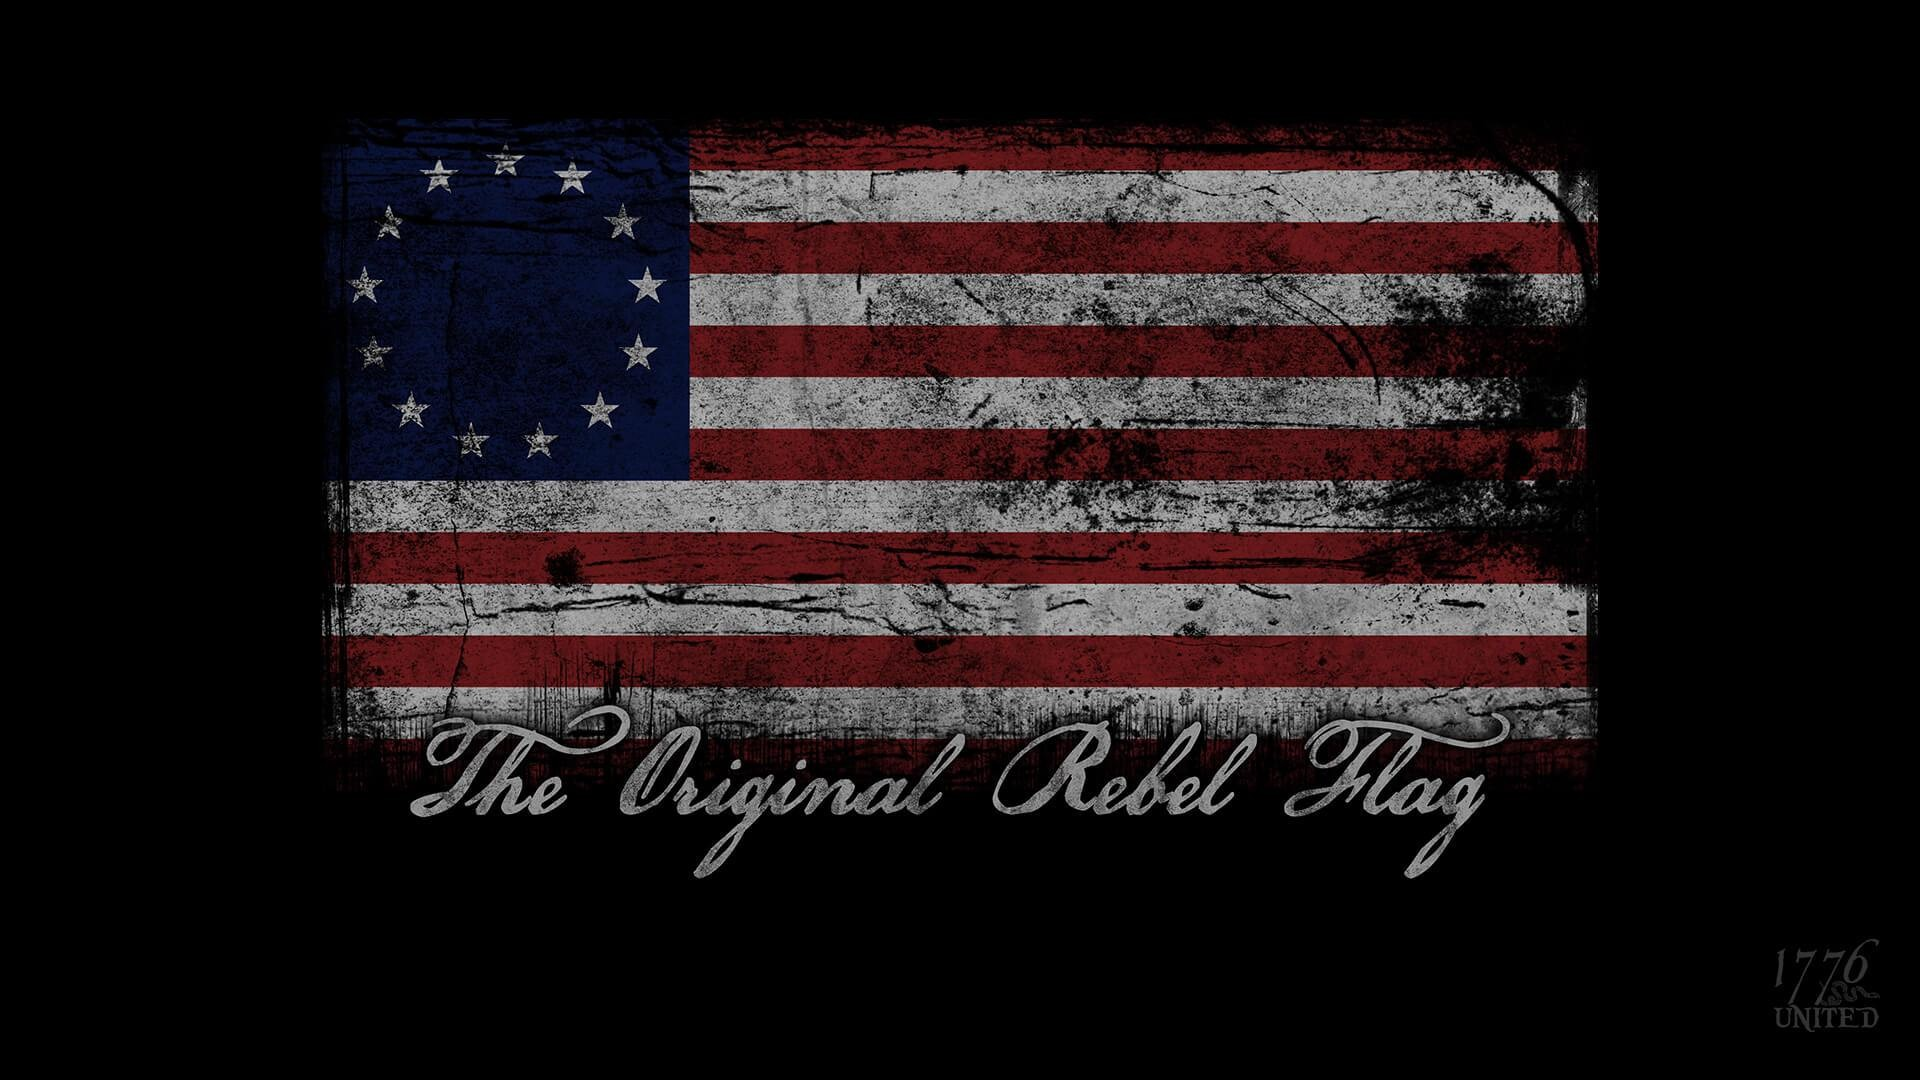 1920x1080 ... The Original Rebel Flag Wallpaper ...